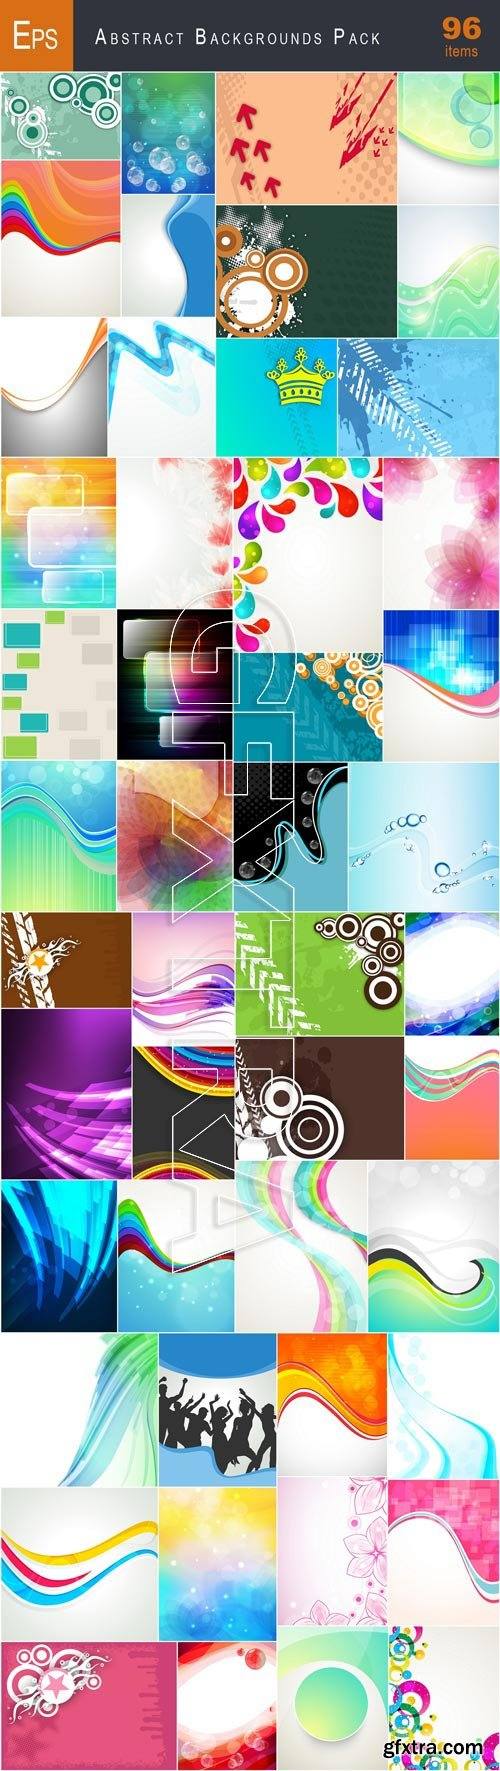 VectorCity Abstract Backgrounds Pack